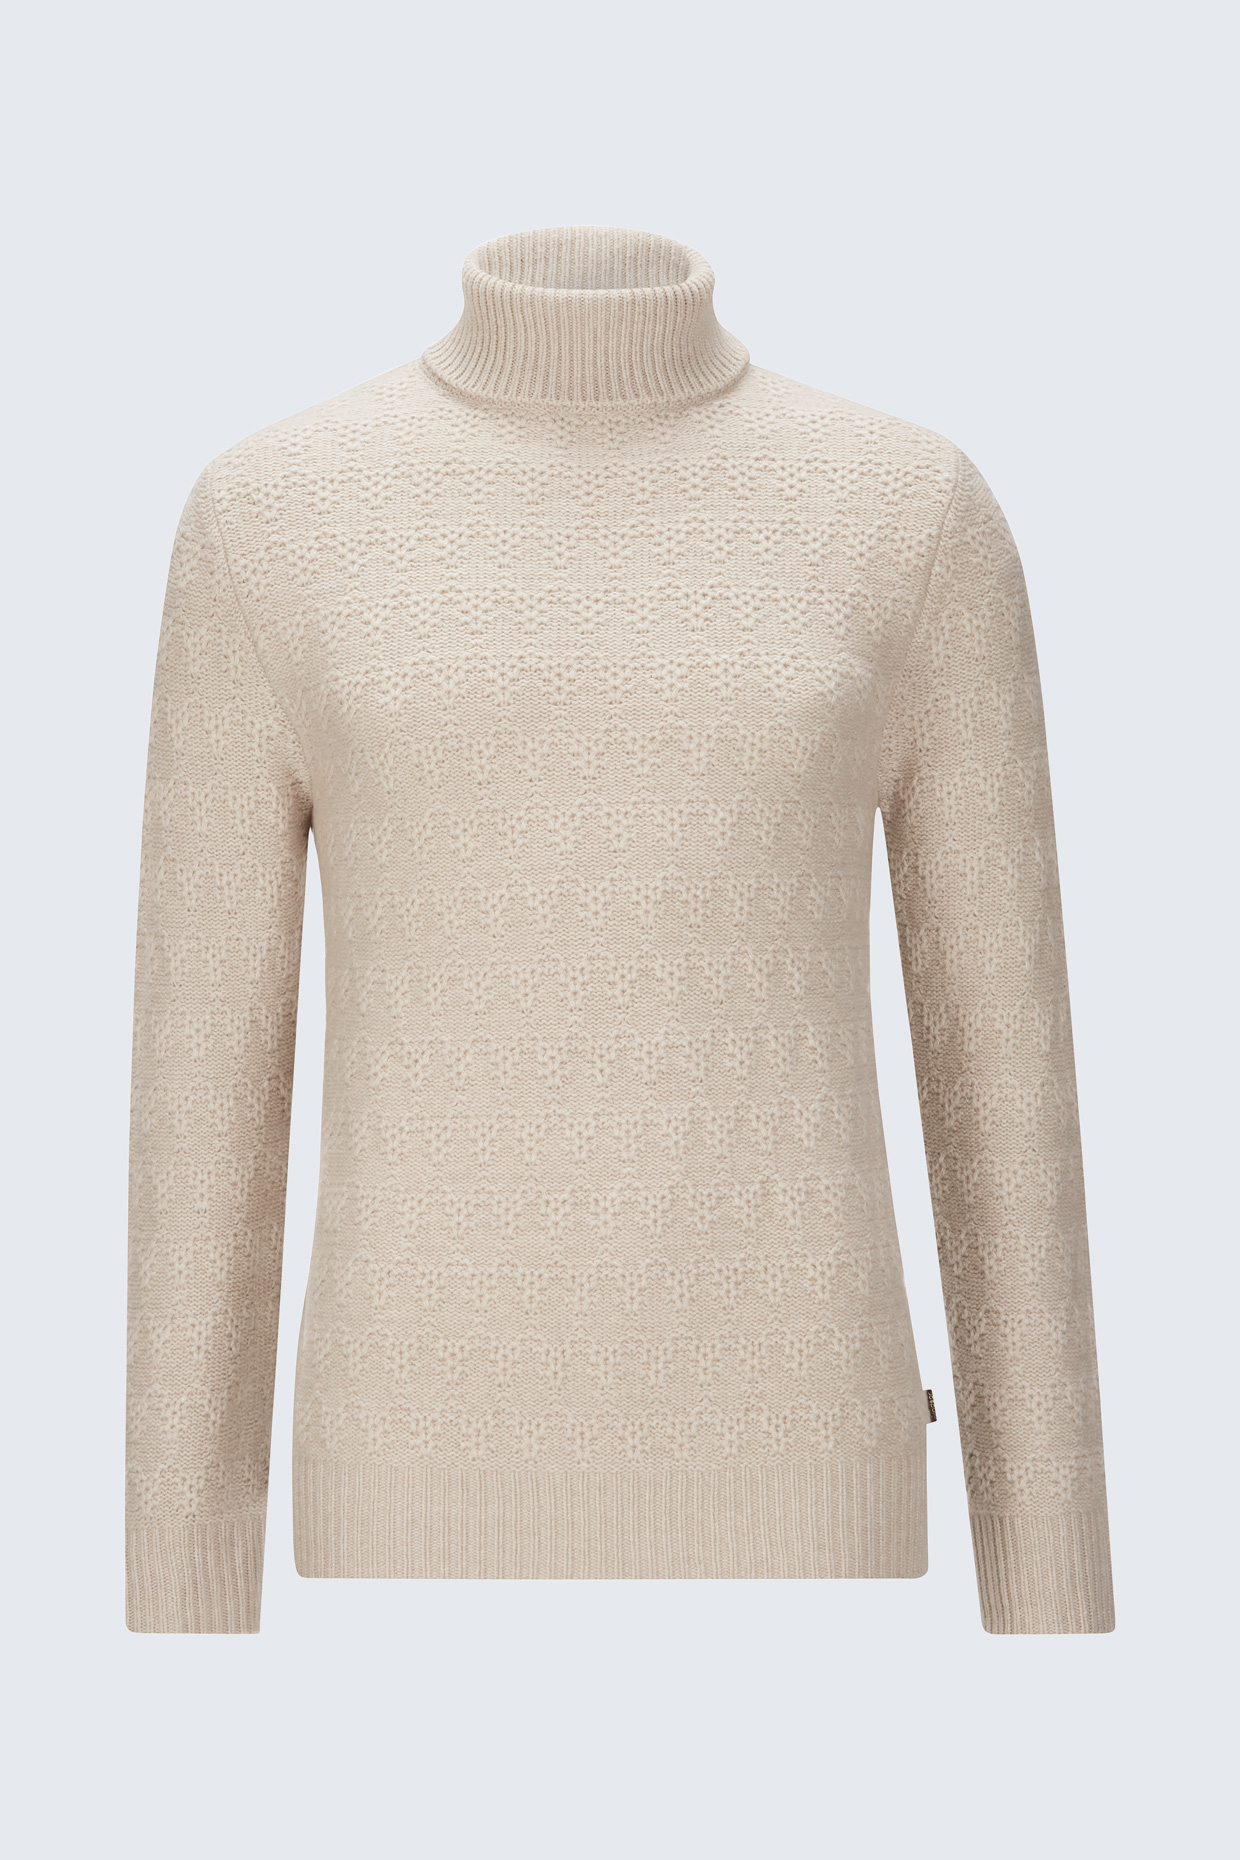 separation shoes e1f96 bfee0 Kaschmir-Wollmix Pullover Maurin in Beige